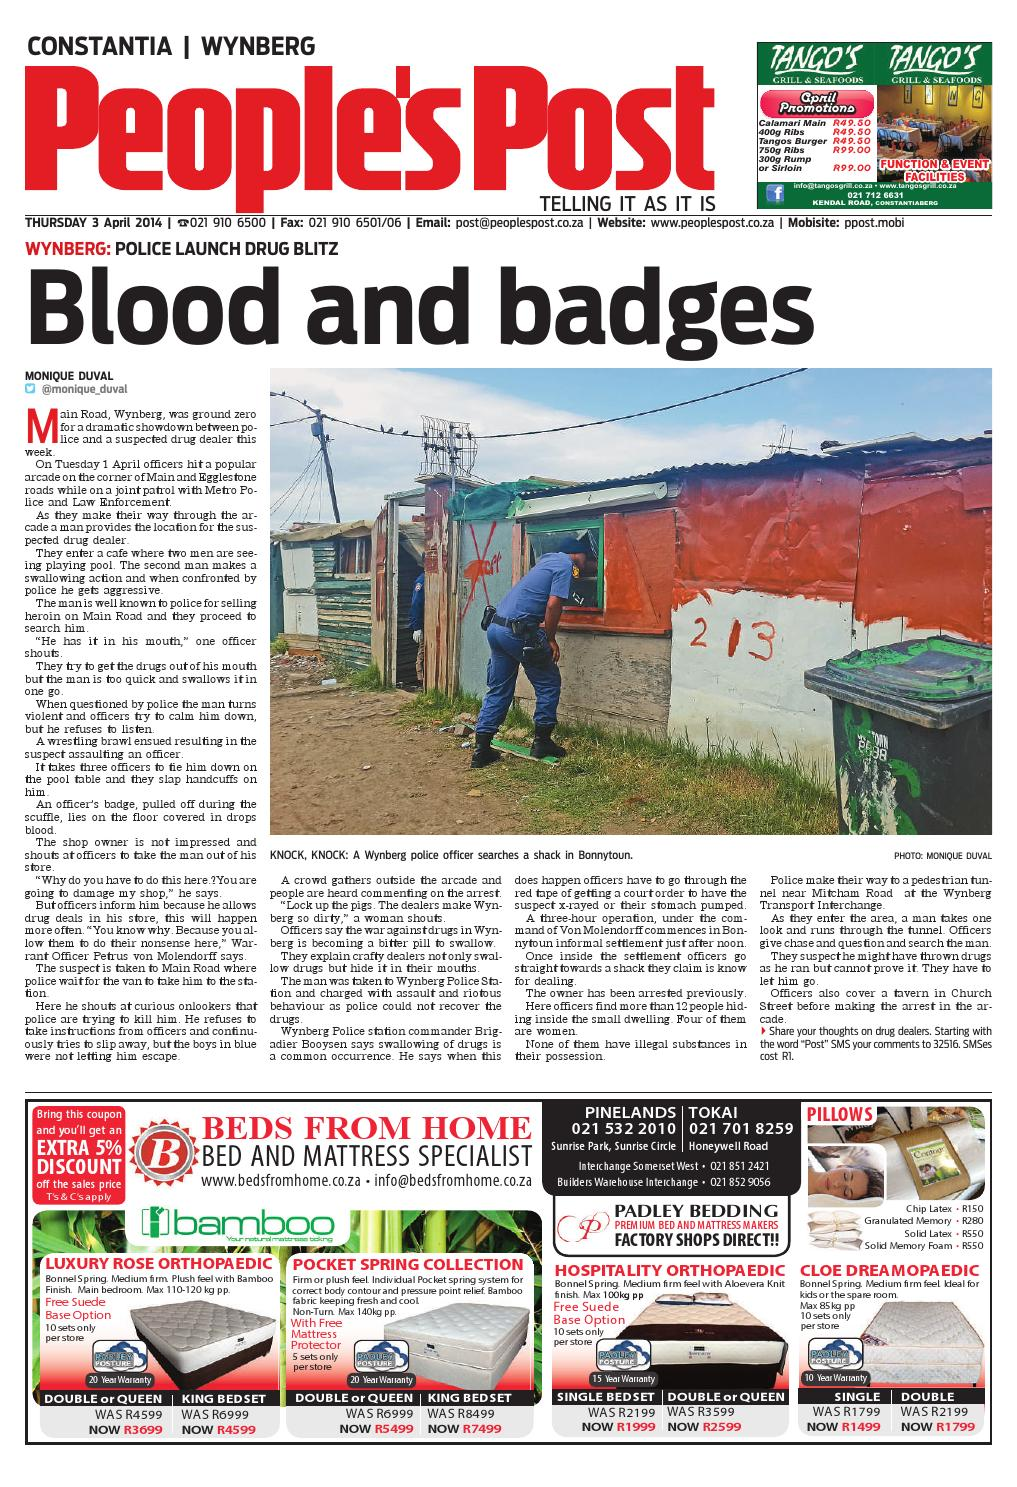 Peoples post constantia 3 apr 2014 by People's Post - issuu